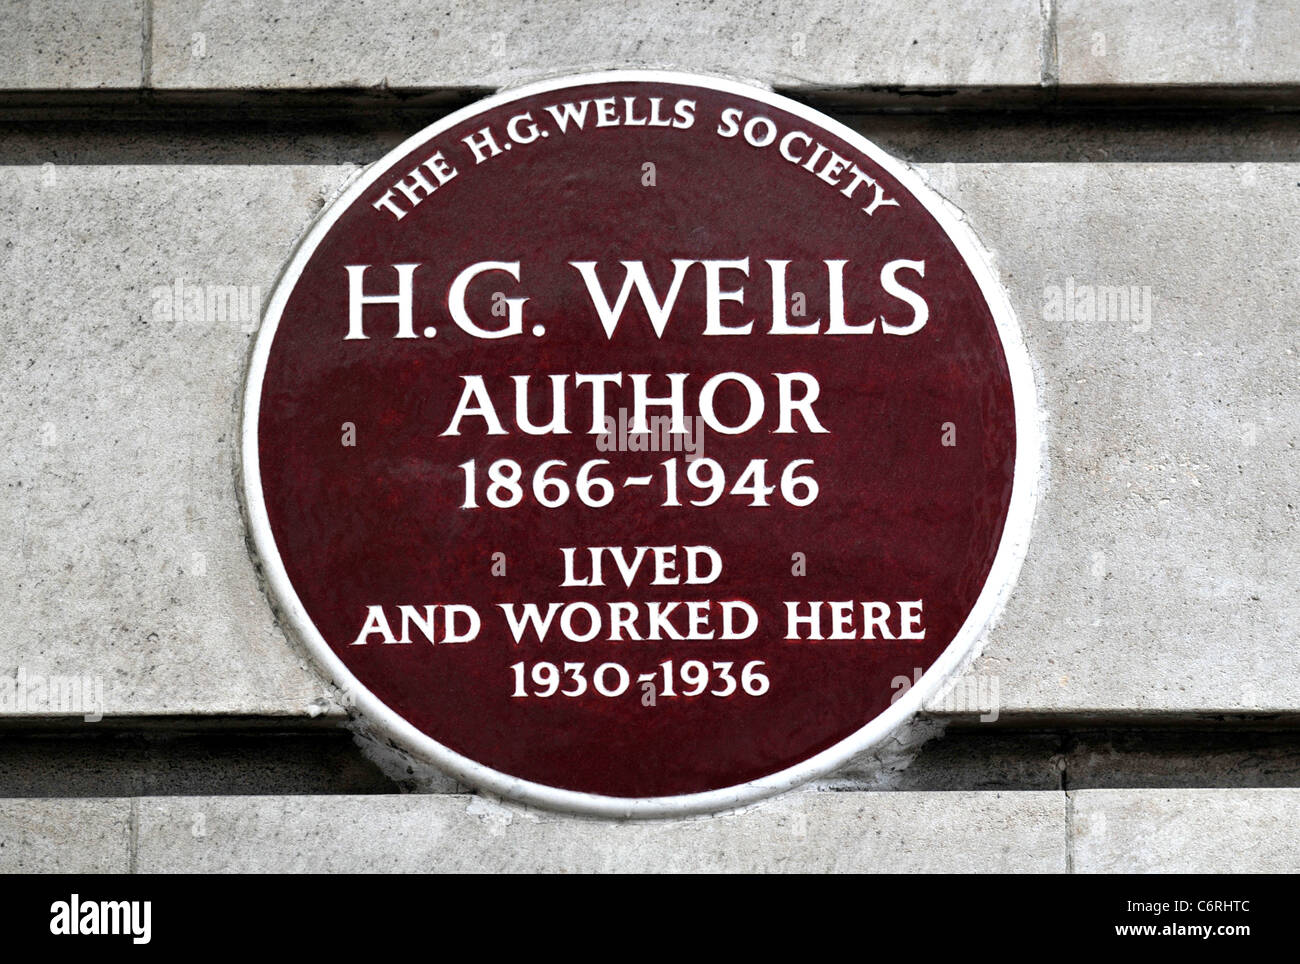 Plaque marking the place where the Author H G Wells lived and worked in Baker Street, London, Britain, UK - Stock Image